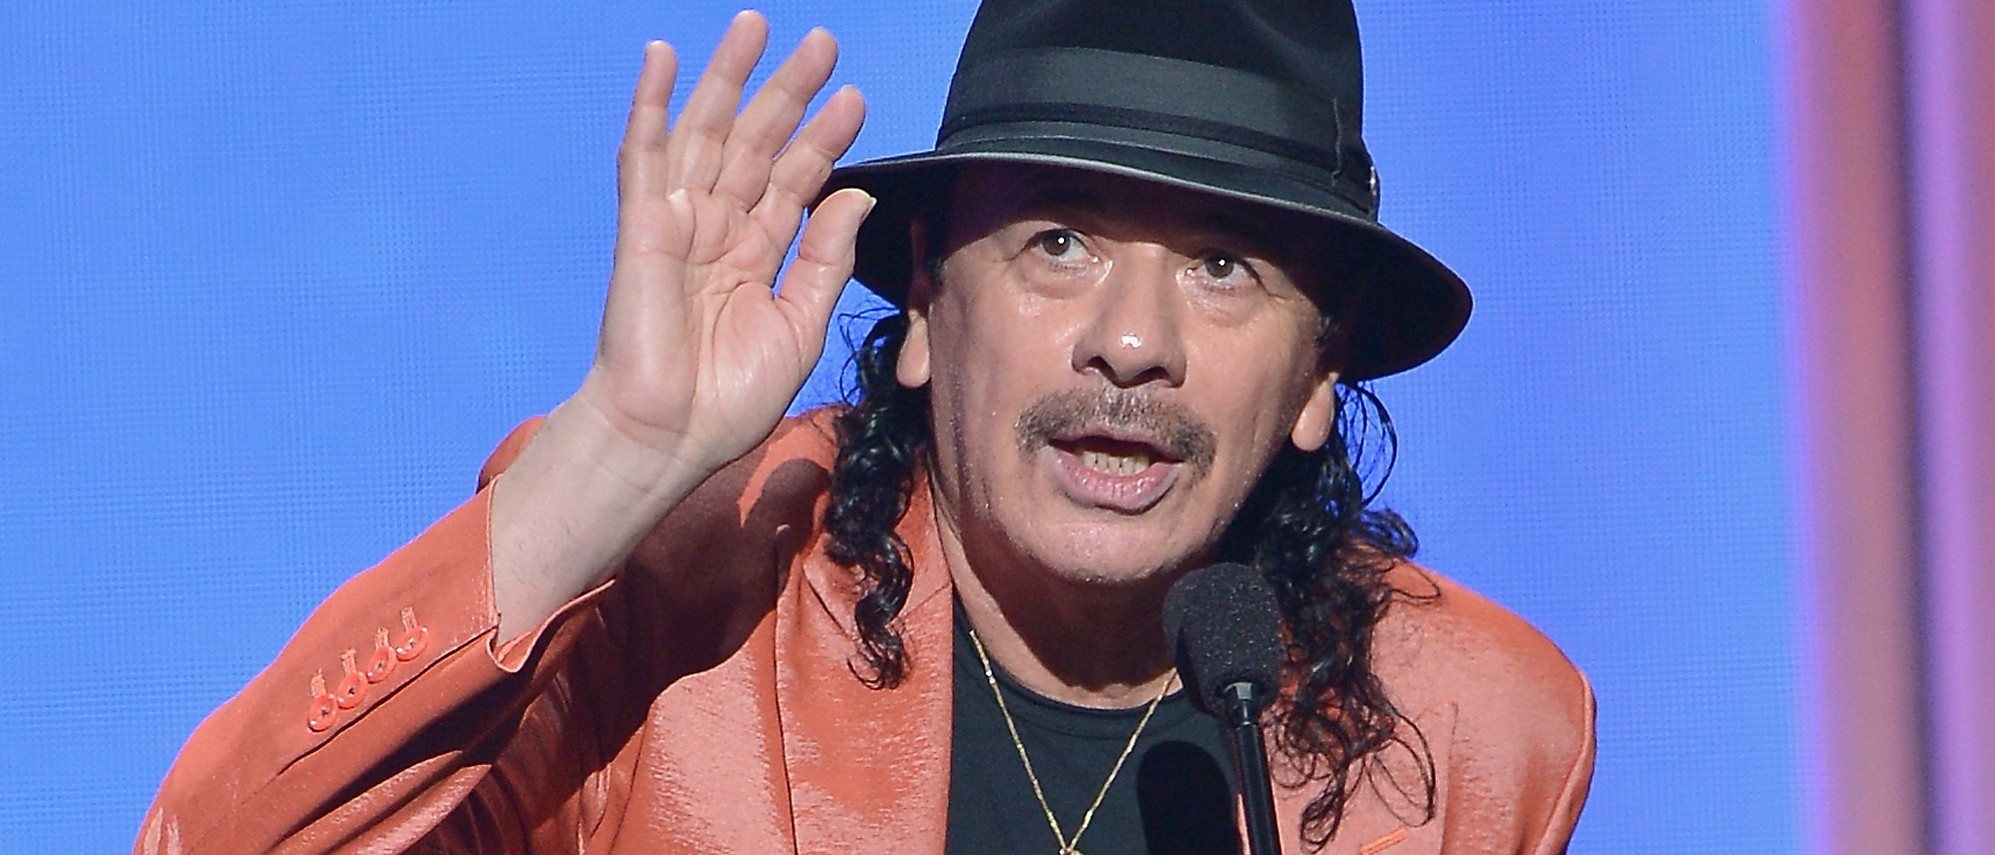 Carlos Santana compares Donald Trump to a monkey. (Photo: Getty Images)